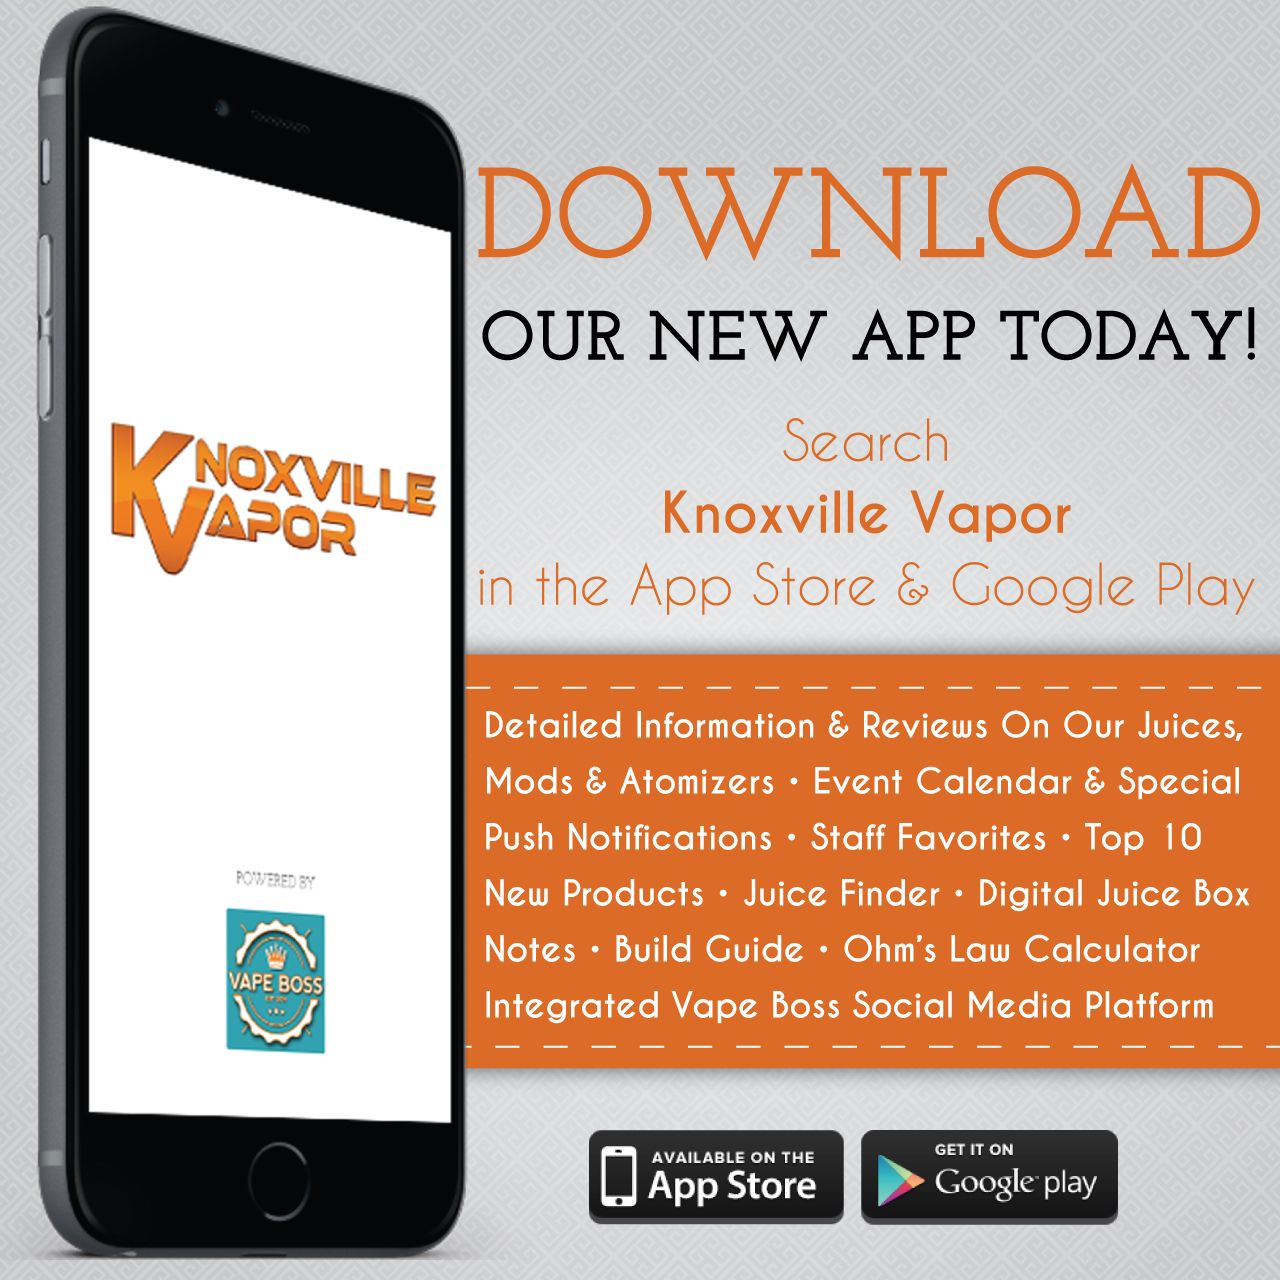 DOWNLOAD! Download our new app, today! Brought to you by